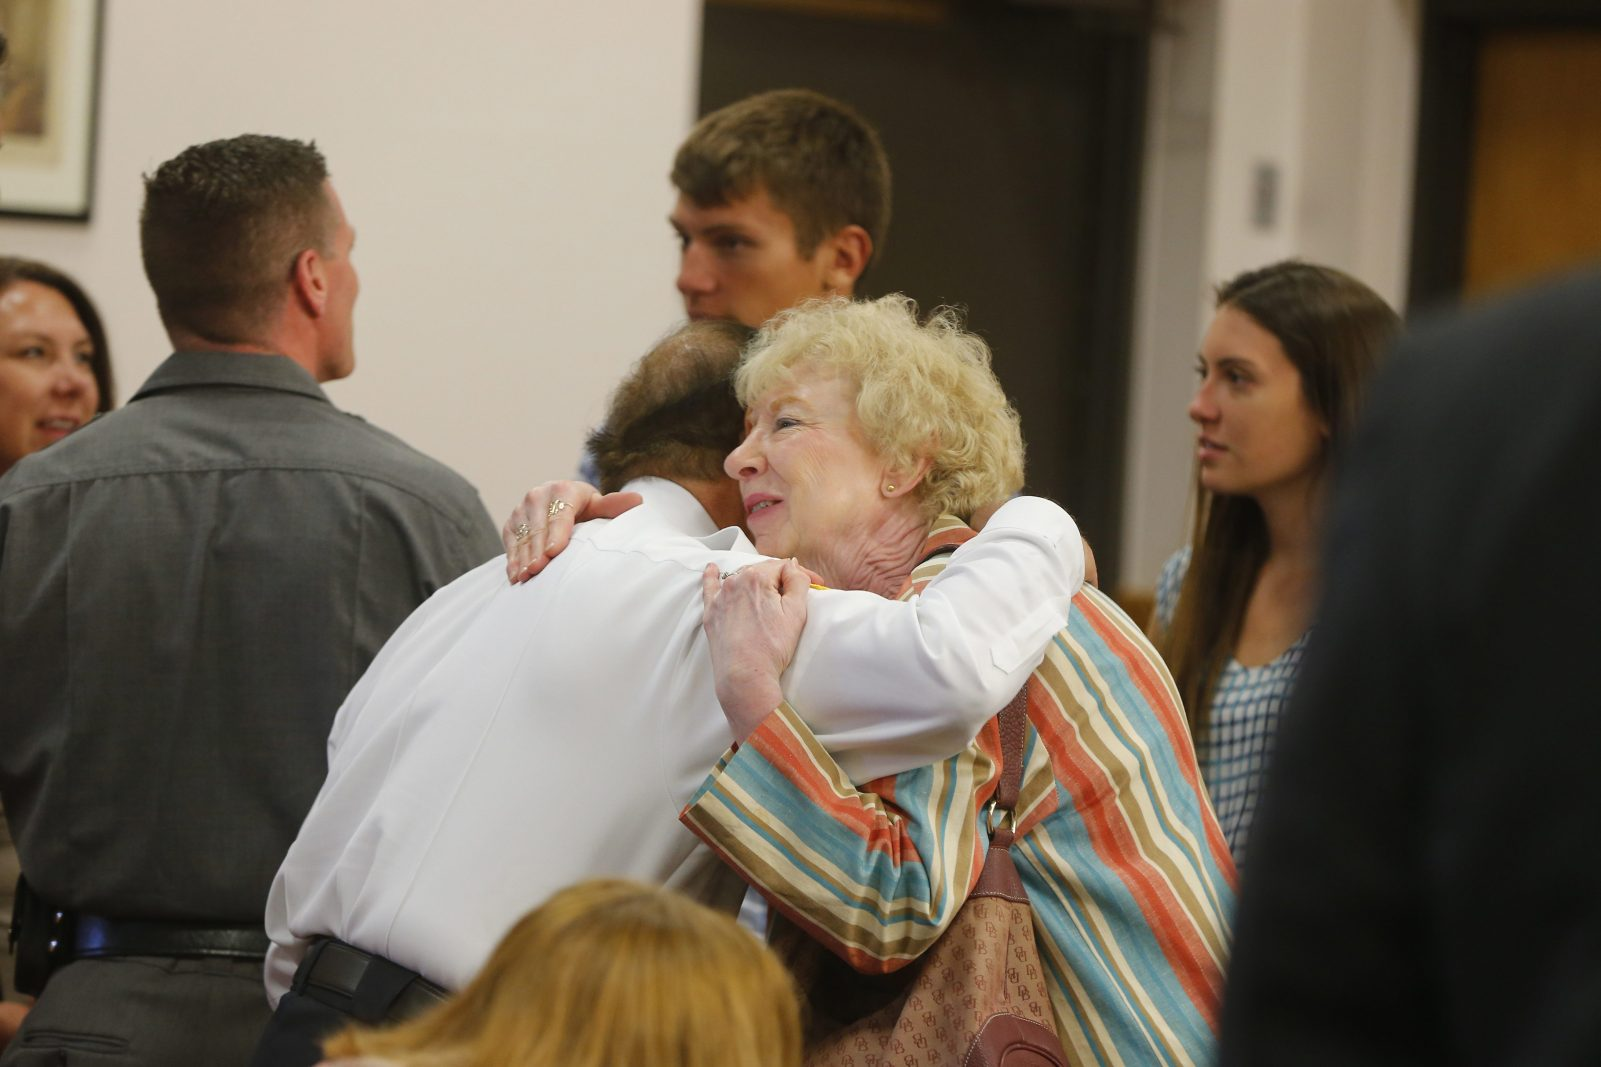 Evans Police Chief Ernest Masulo hug's Charlotte Moss, mother of Barry Moss, after a press conference at the Evans Town Hall Tuesday, June 21, 2016. (Mark Mulville/Buffalo News)